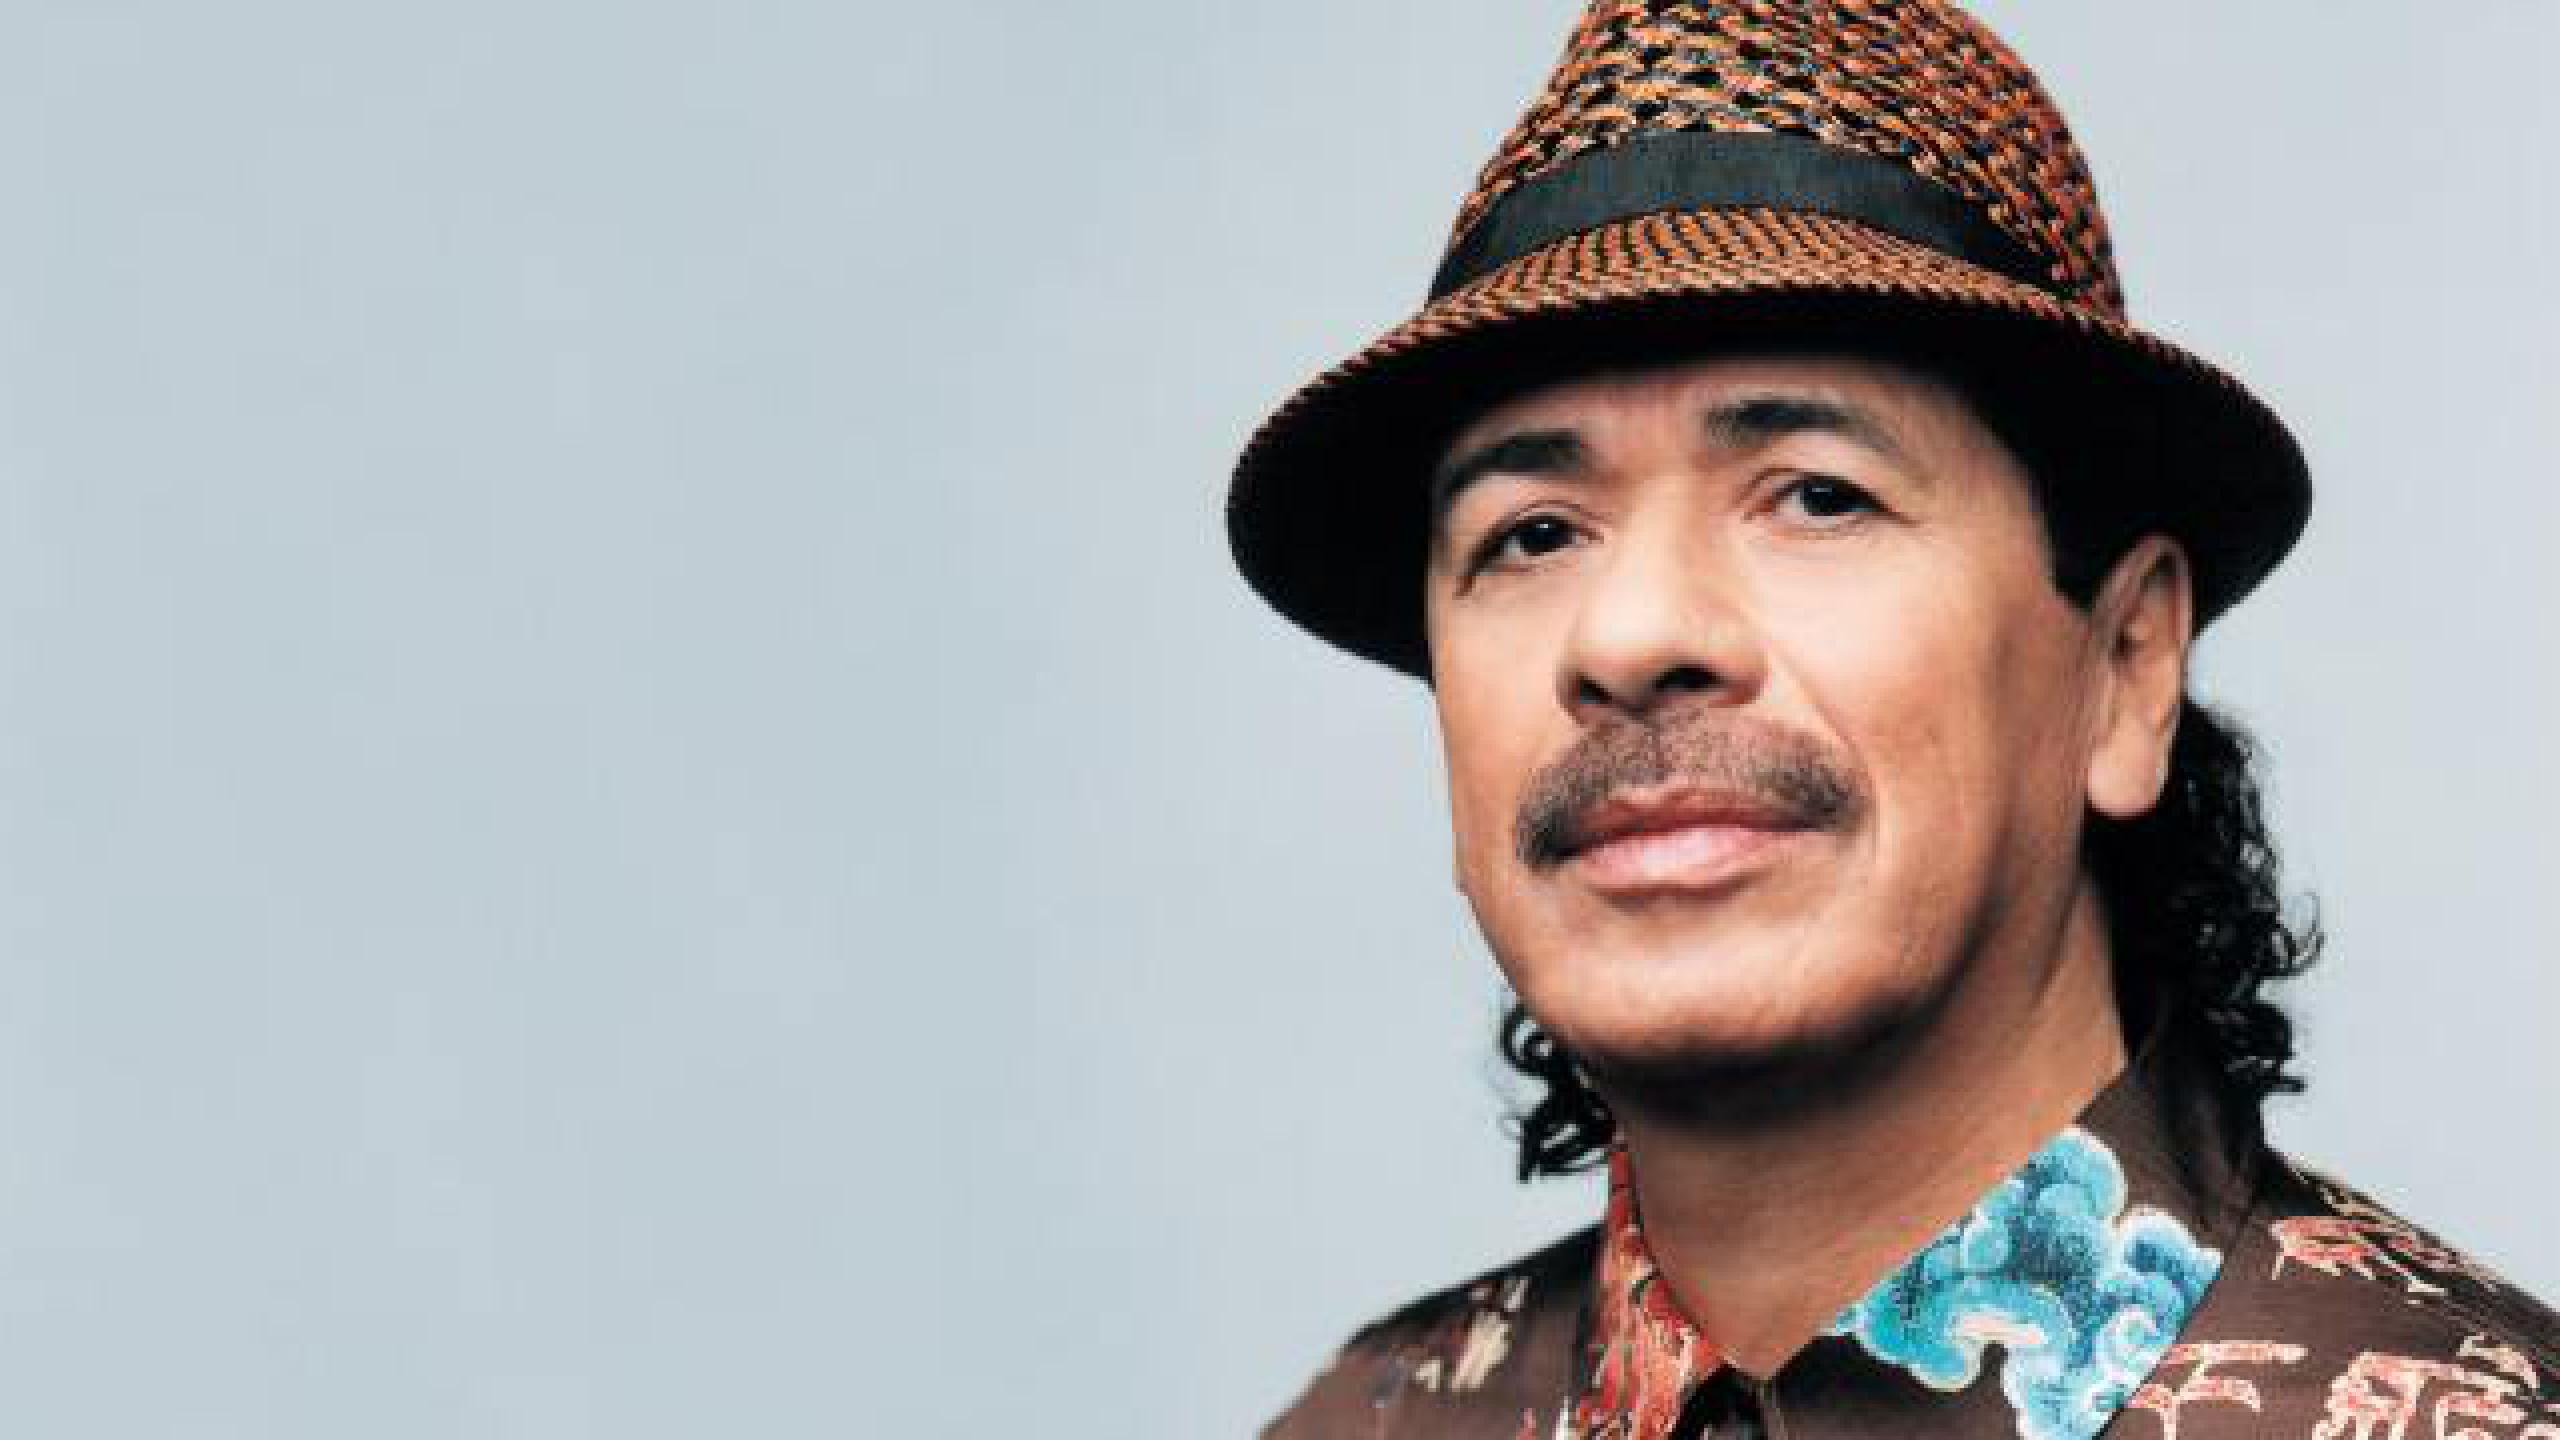 https://cdn.wegow.com/media/artists/carlos-santana/carlos-santana-1492554491.27.2560x1440.jpg